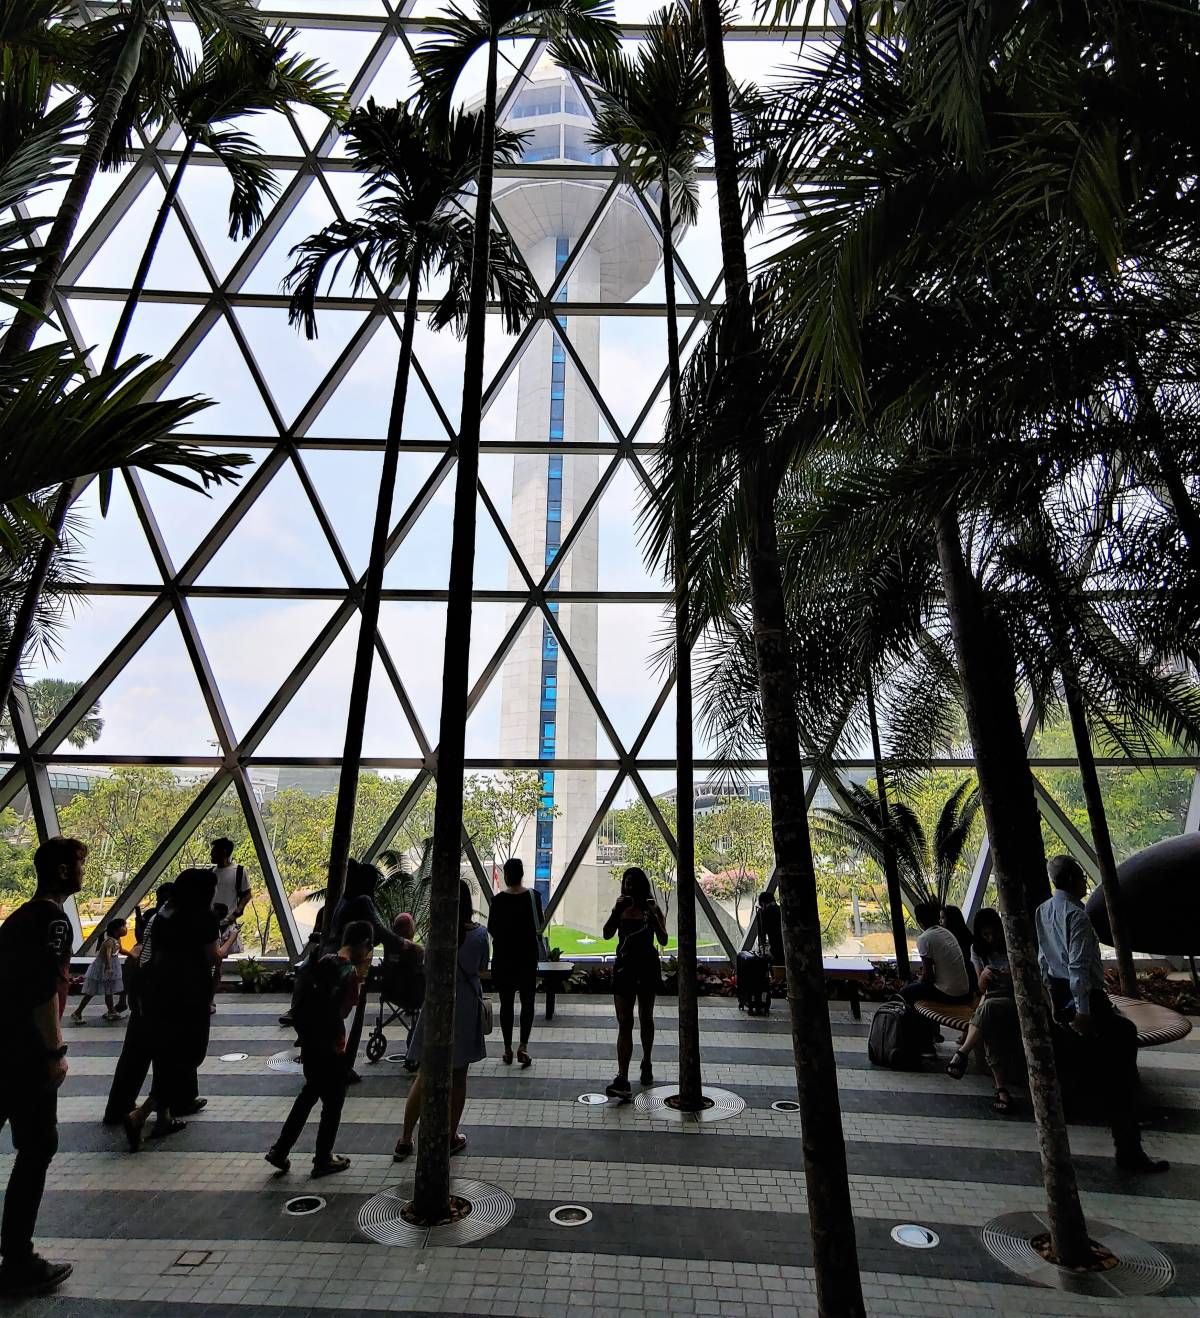 SINGAPOREANS FLOCK TO JEWEL CHANGI AIRPORT ON ITS OPENING WEEKEND